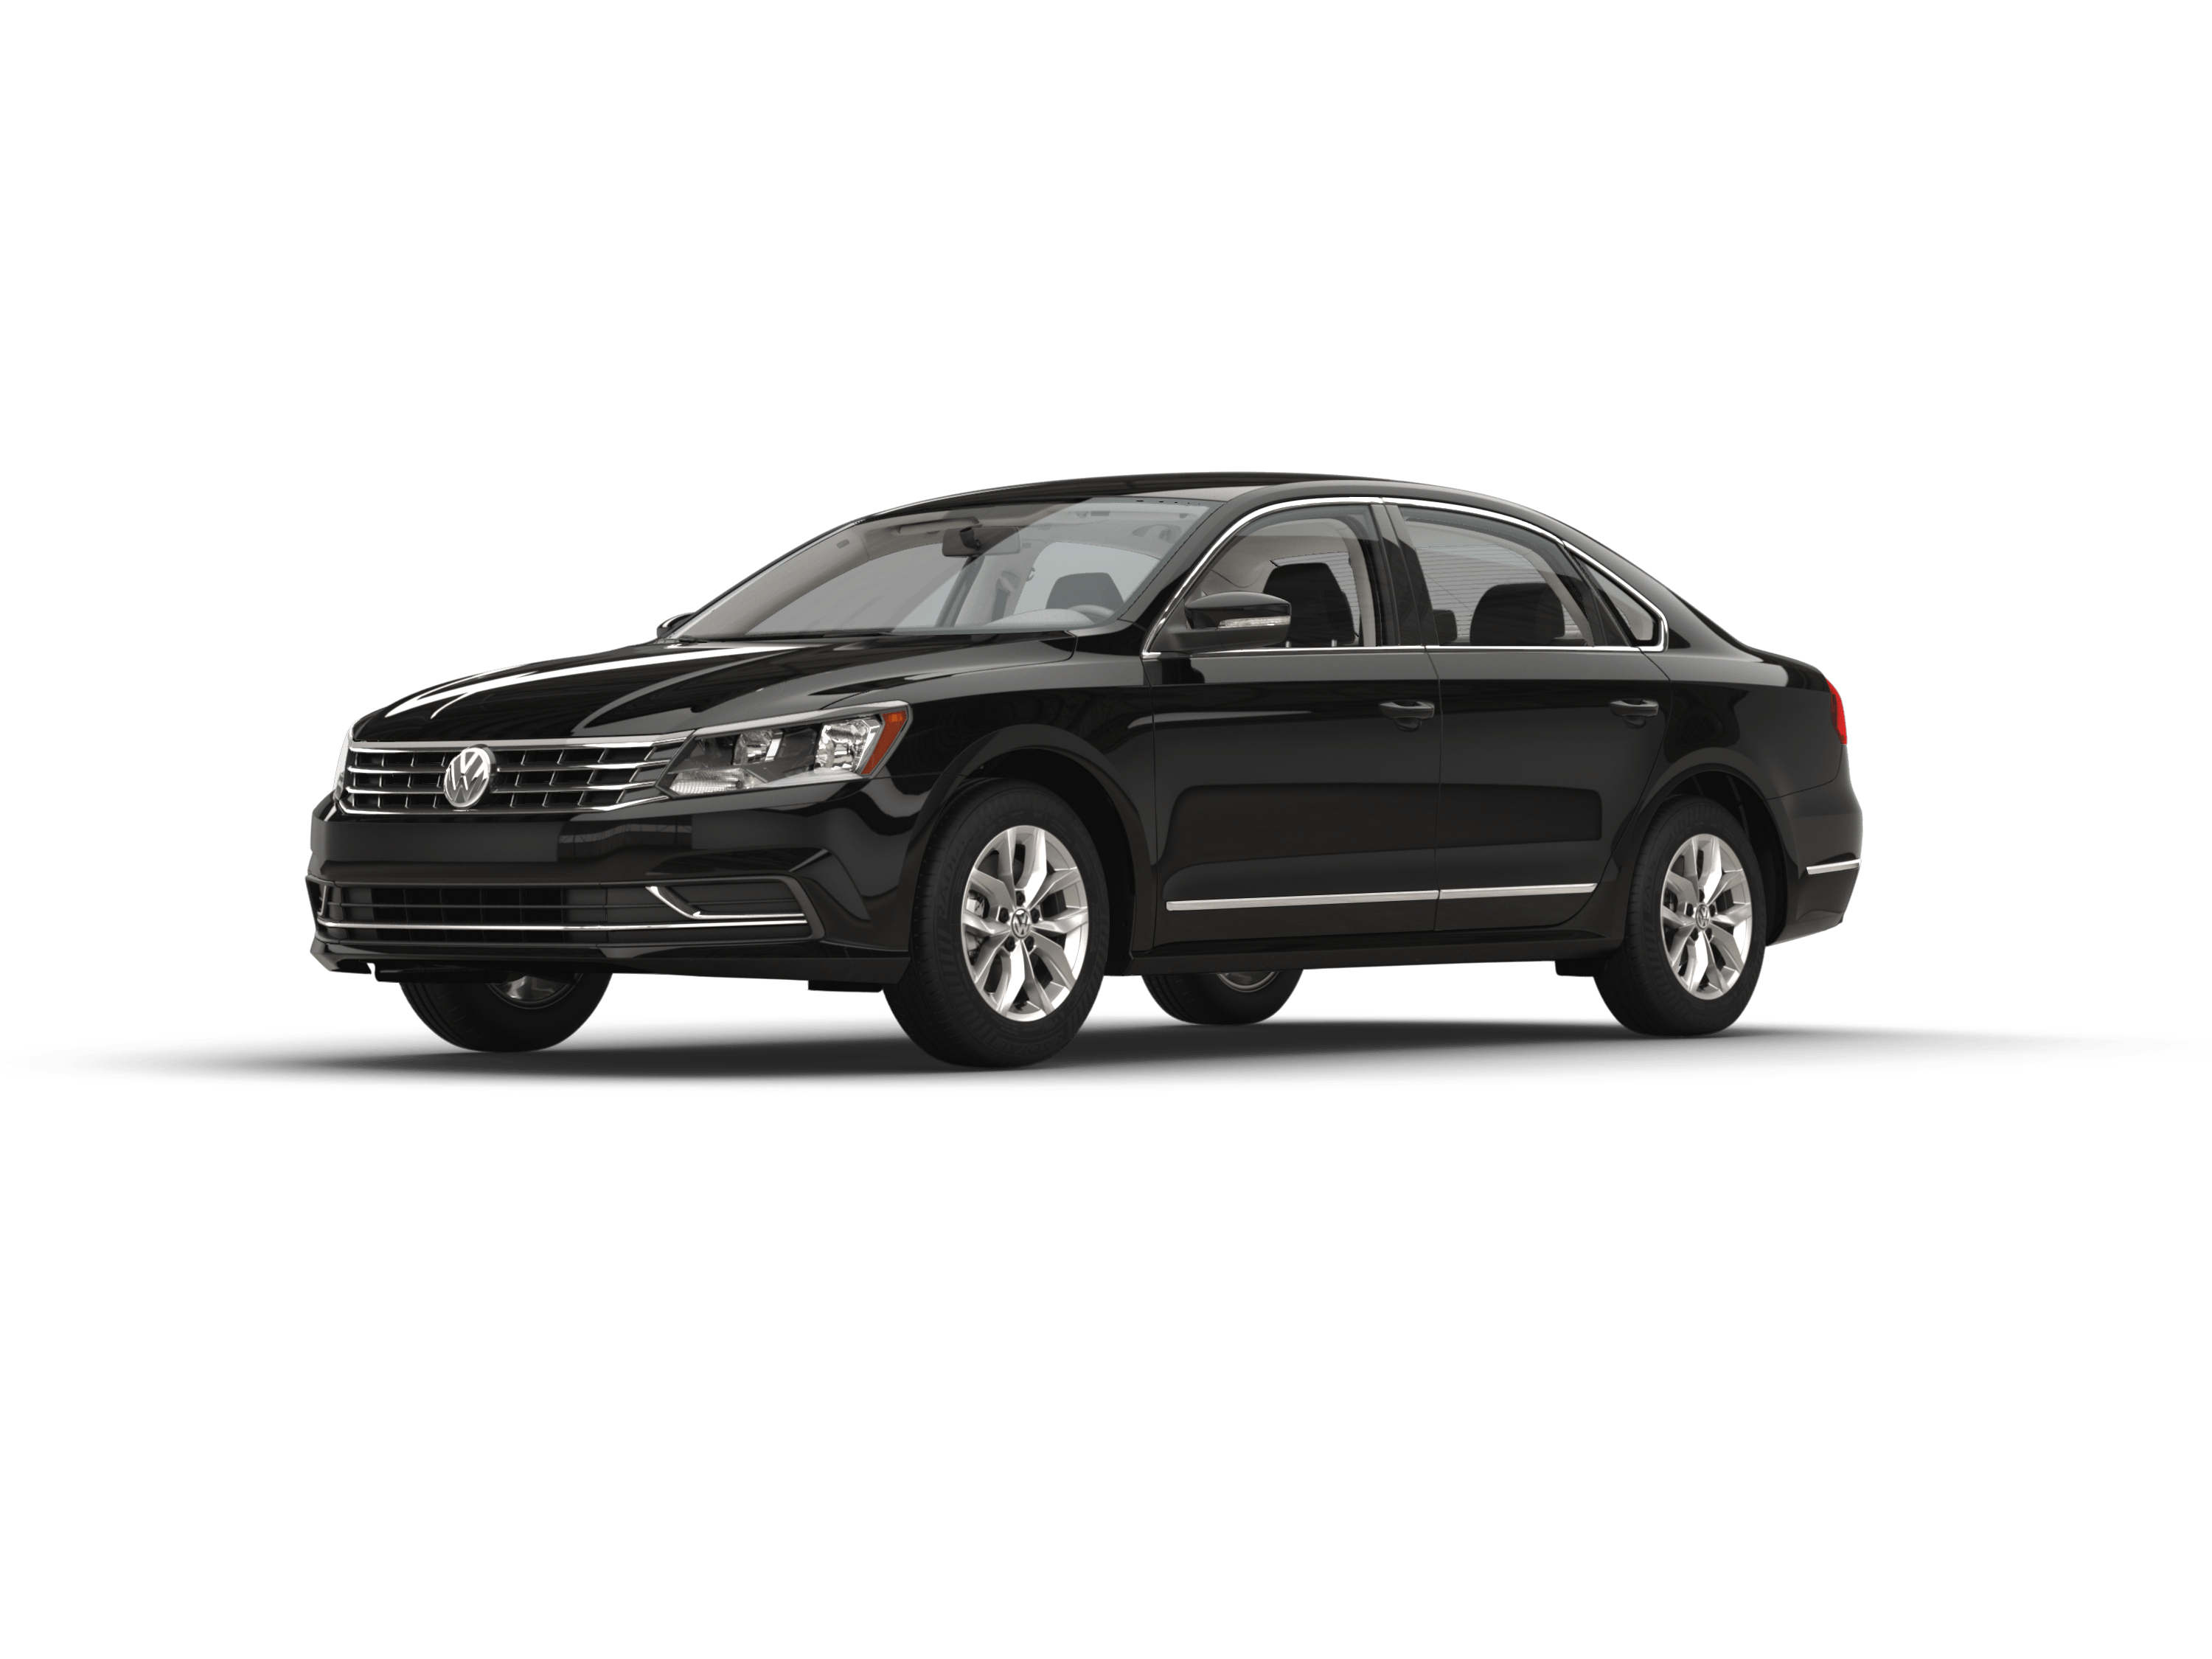 oem at dig prices vw california volkswagen lease sale monica atlas santa passat finance offers atls new on now and ca